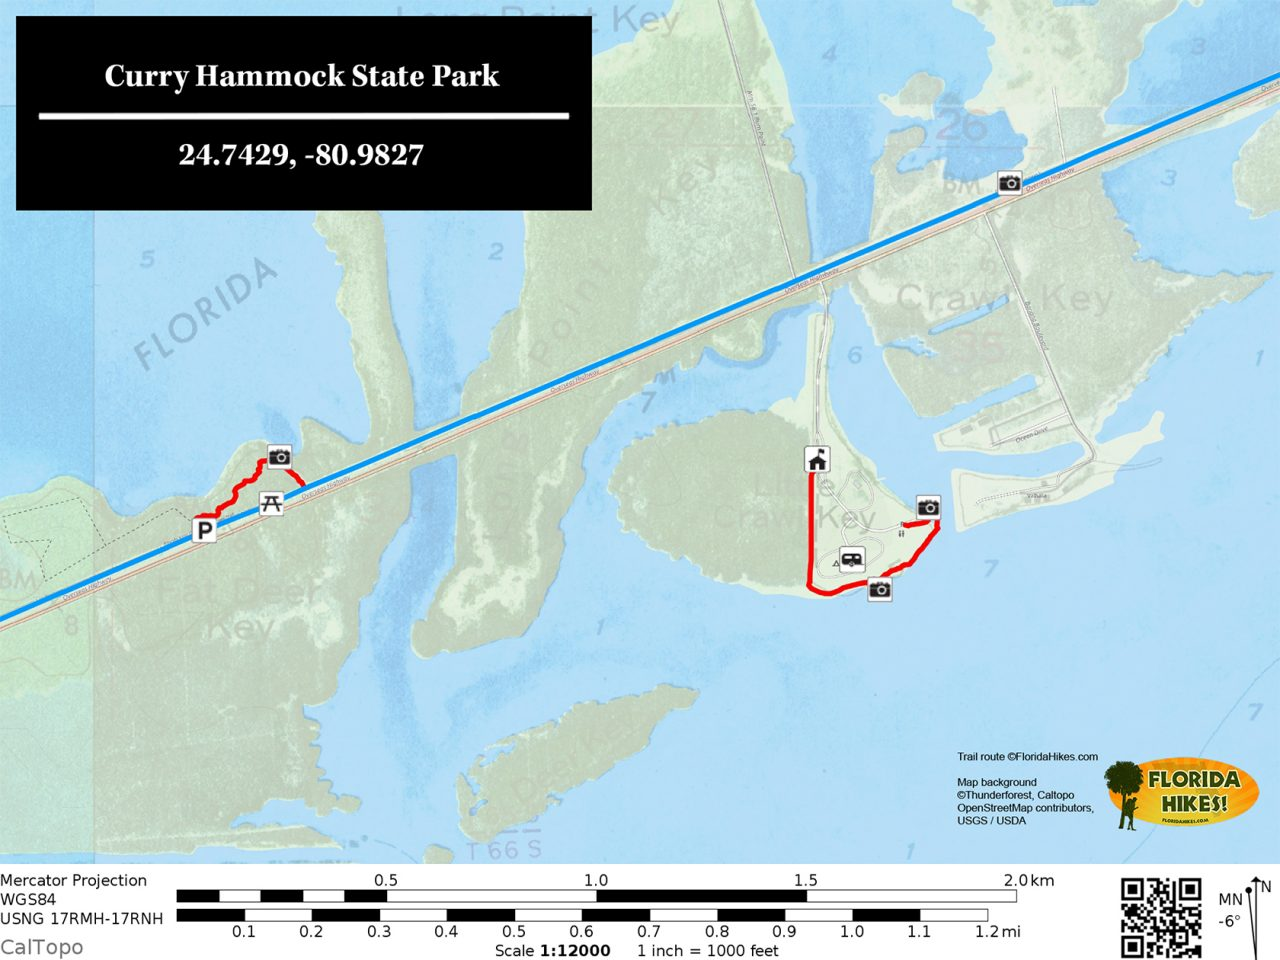 Curry Hammock State Park map